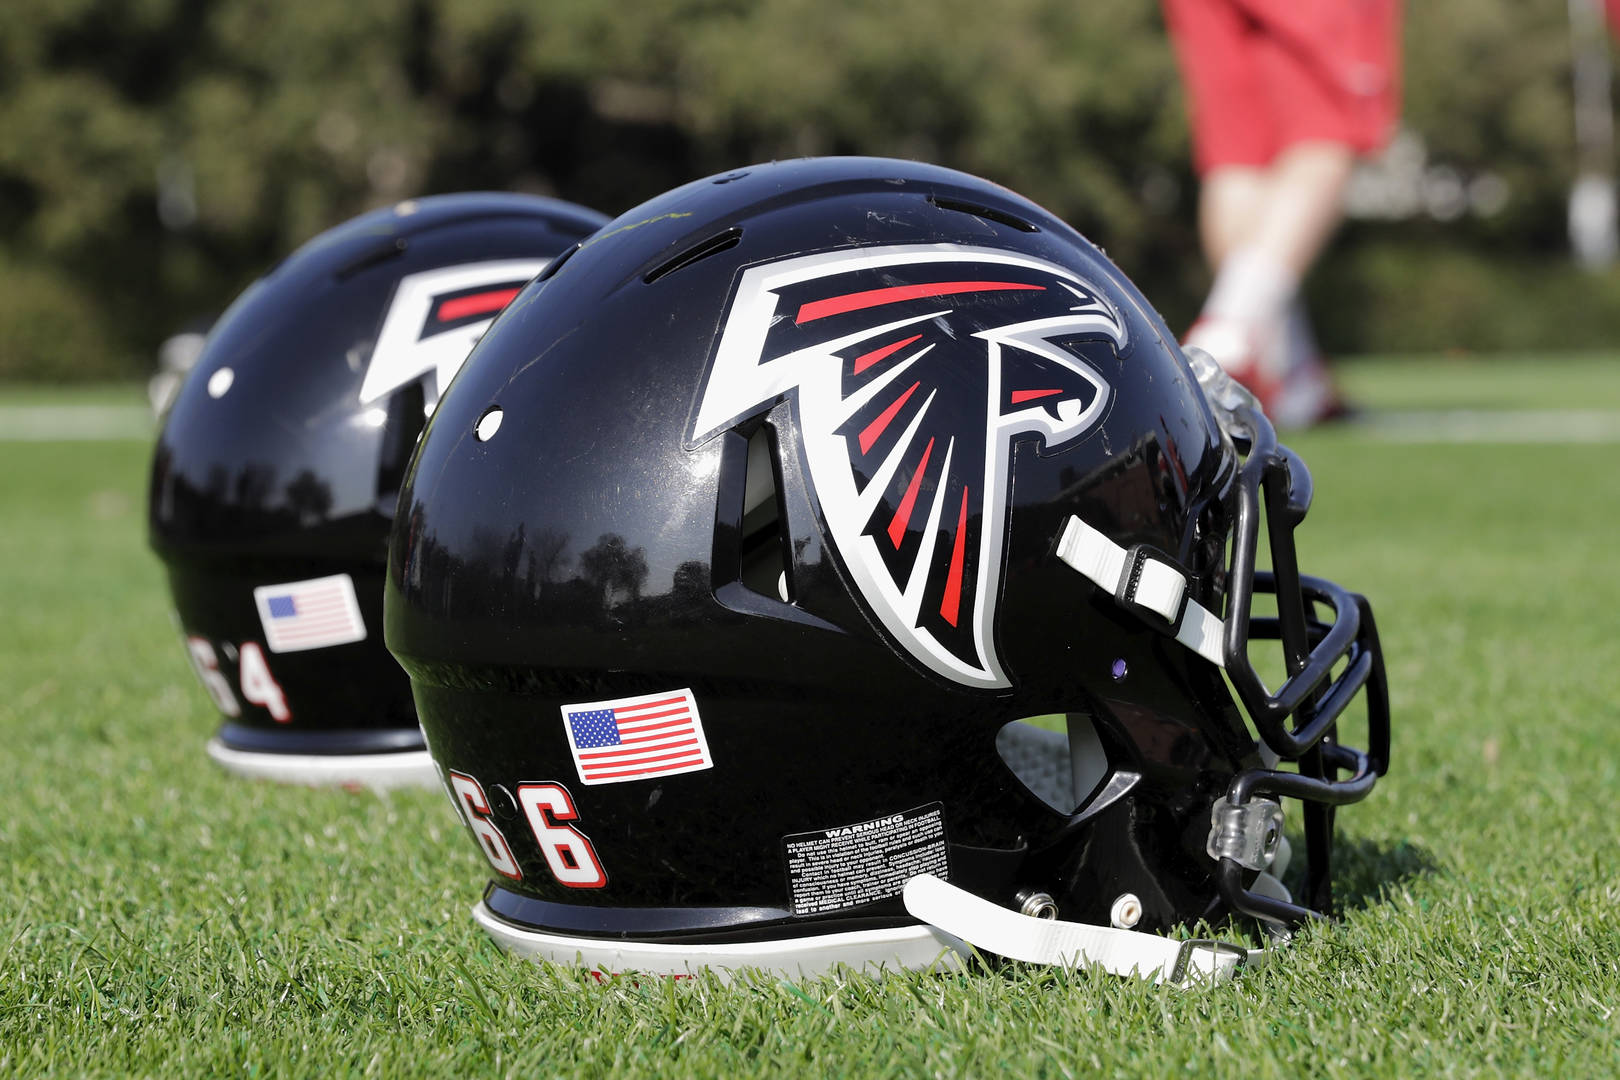 Atlanta Falcons helmets on the field during the Super Bowl LI practice on February 2, 2017 in Houston, Texas